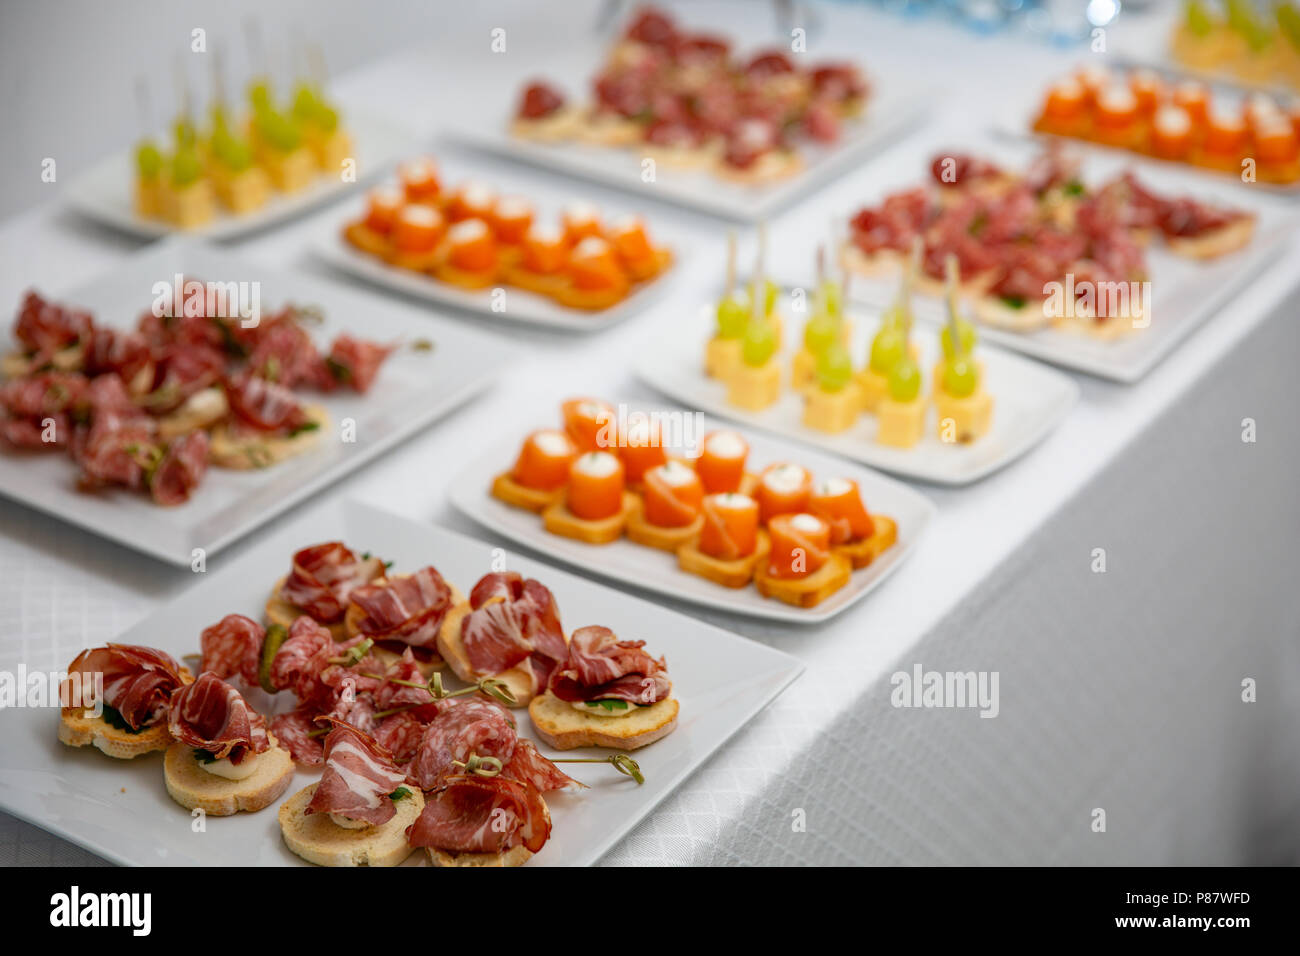 Set a variety of canapes and snacks on a table at the restaurant to celebrate the wedding or other solemn event. - Stock Image